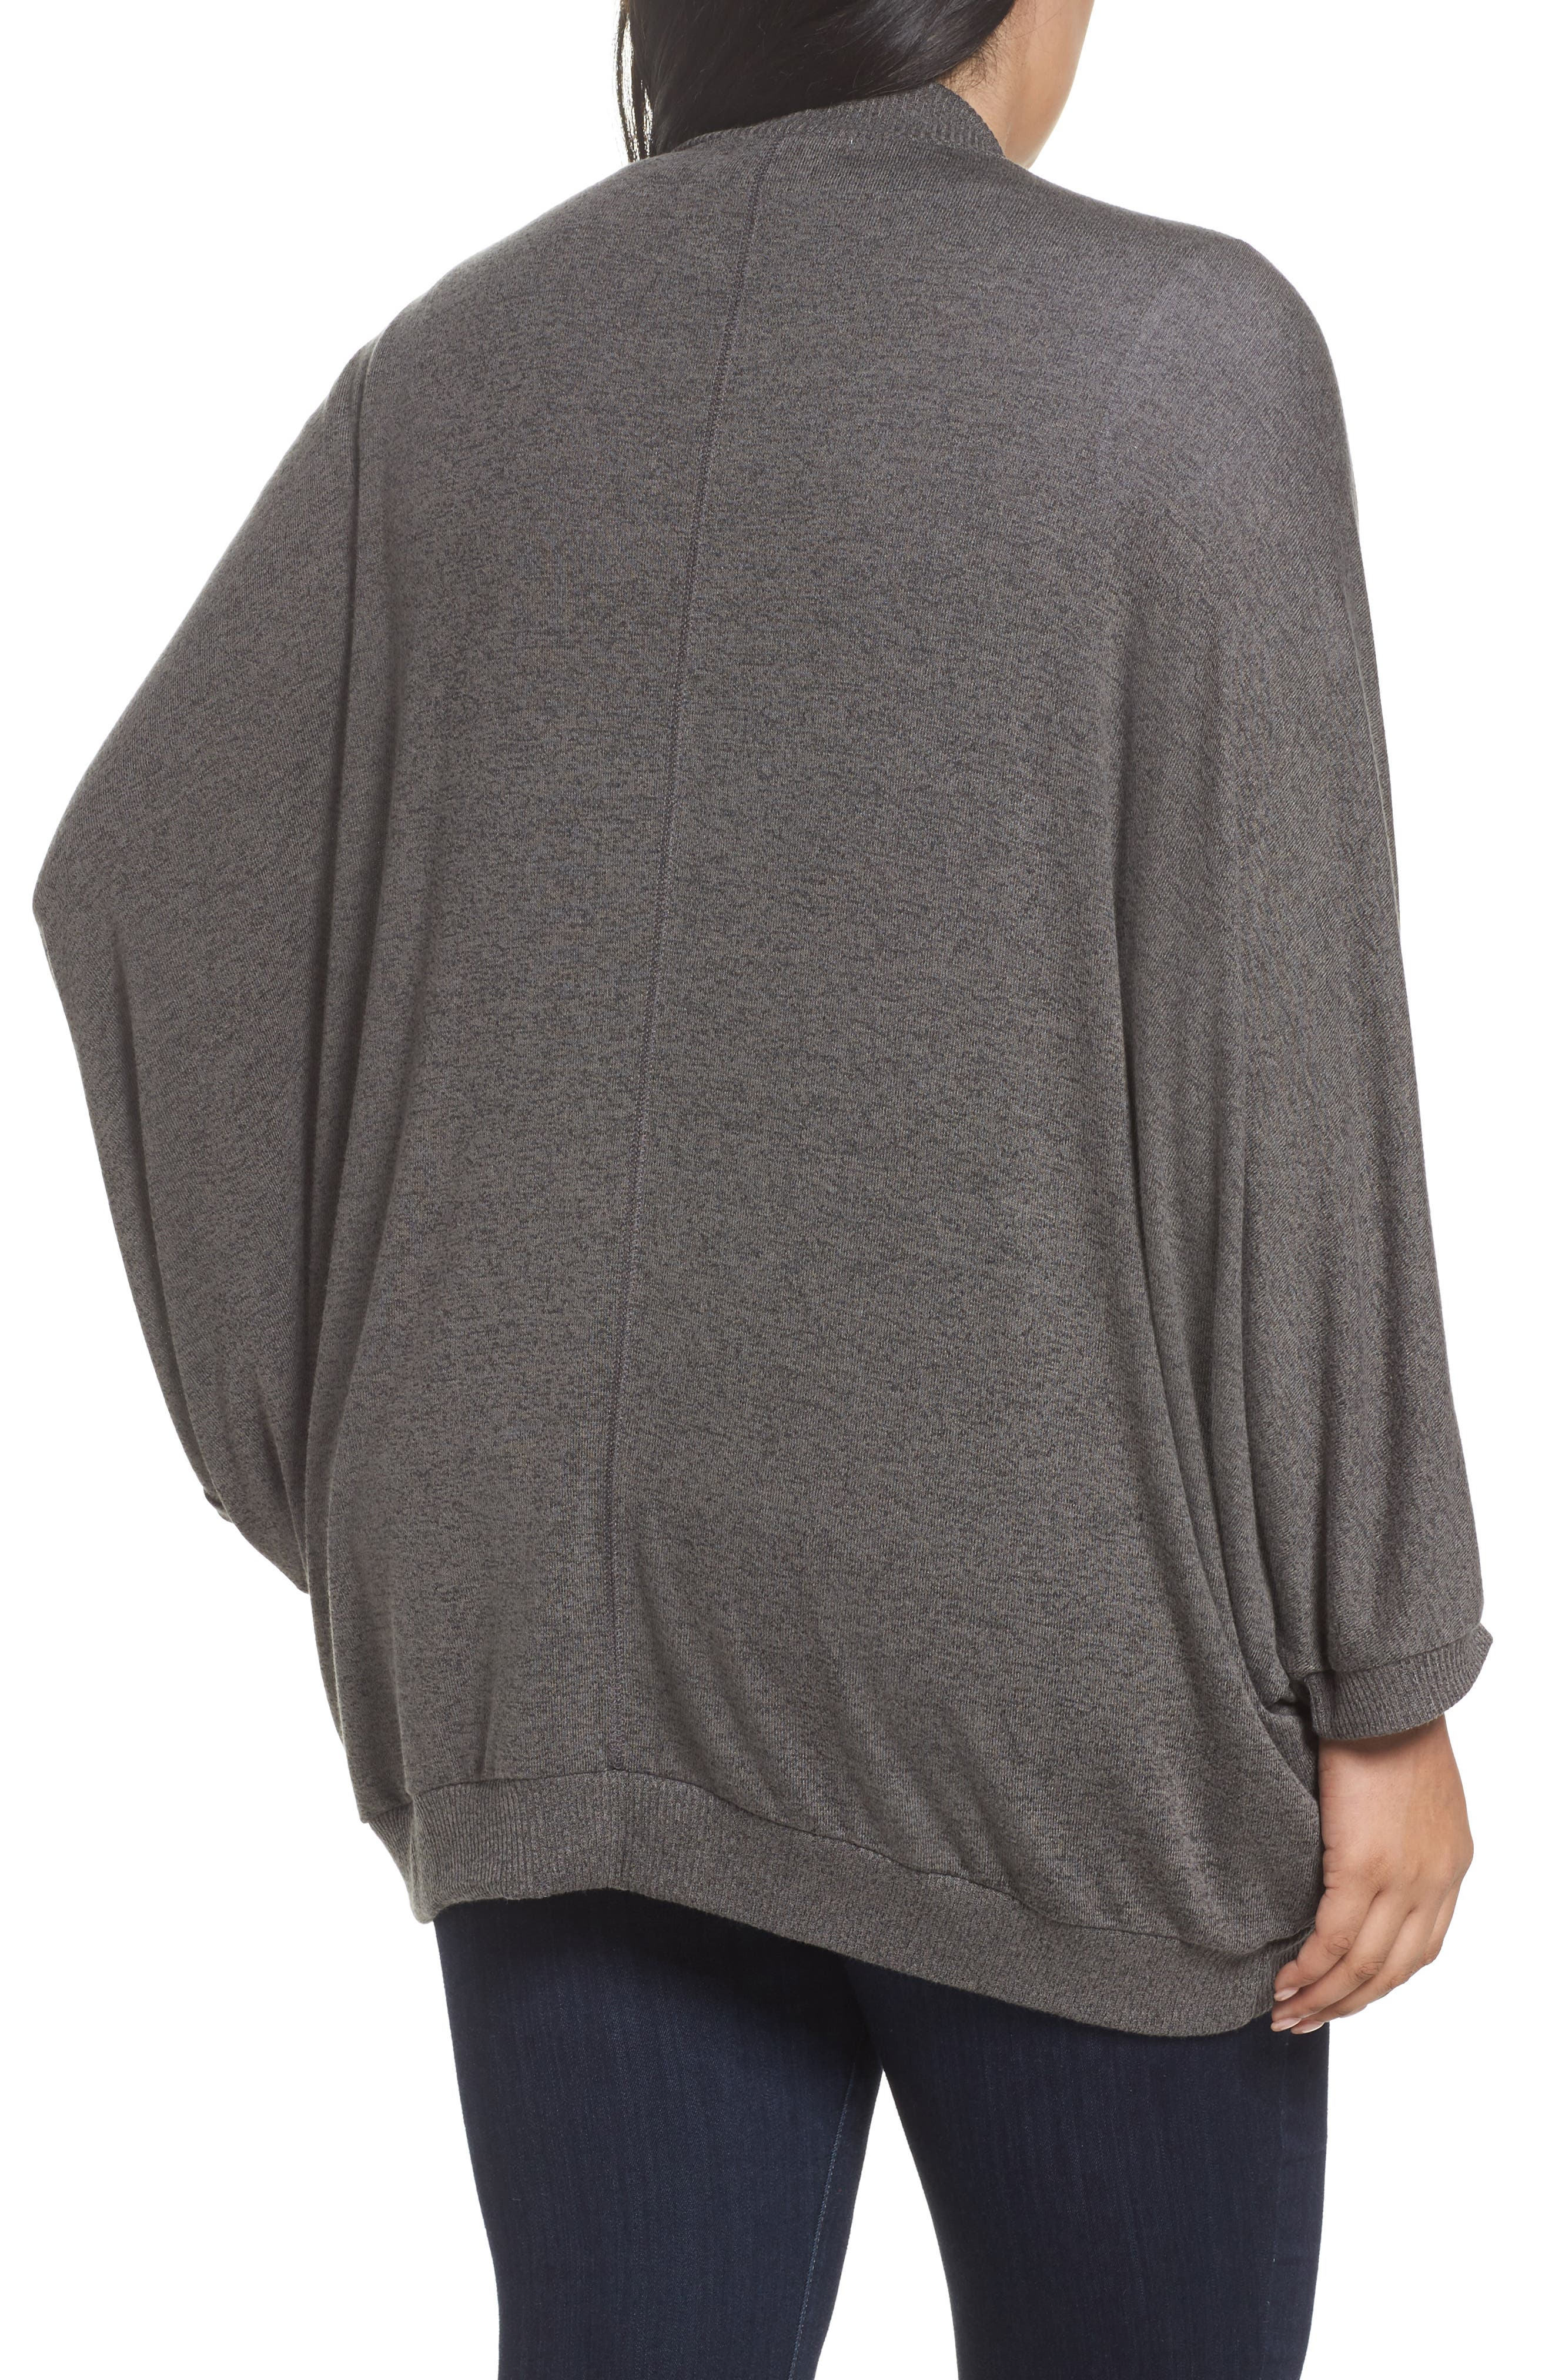 Hacci Cocoon Cardigan,                             Alternate thumbnail 2, color,                             Grey Medium Charcoal Heather